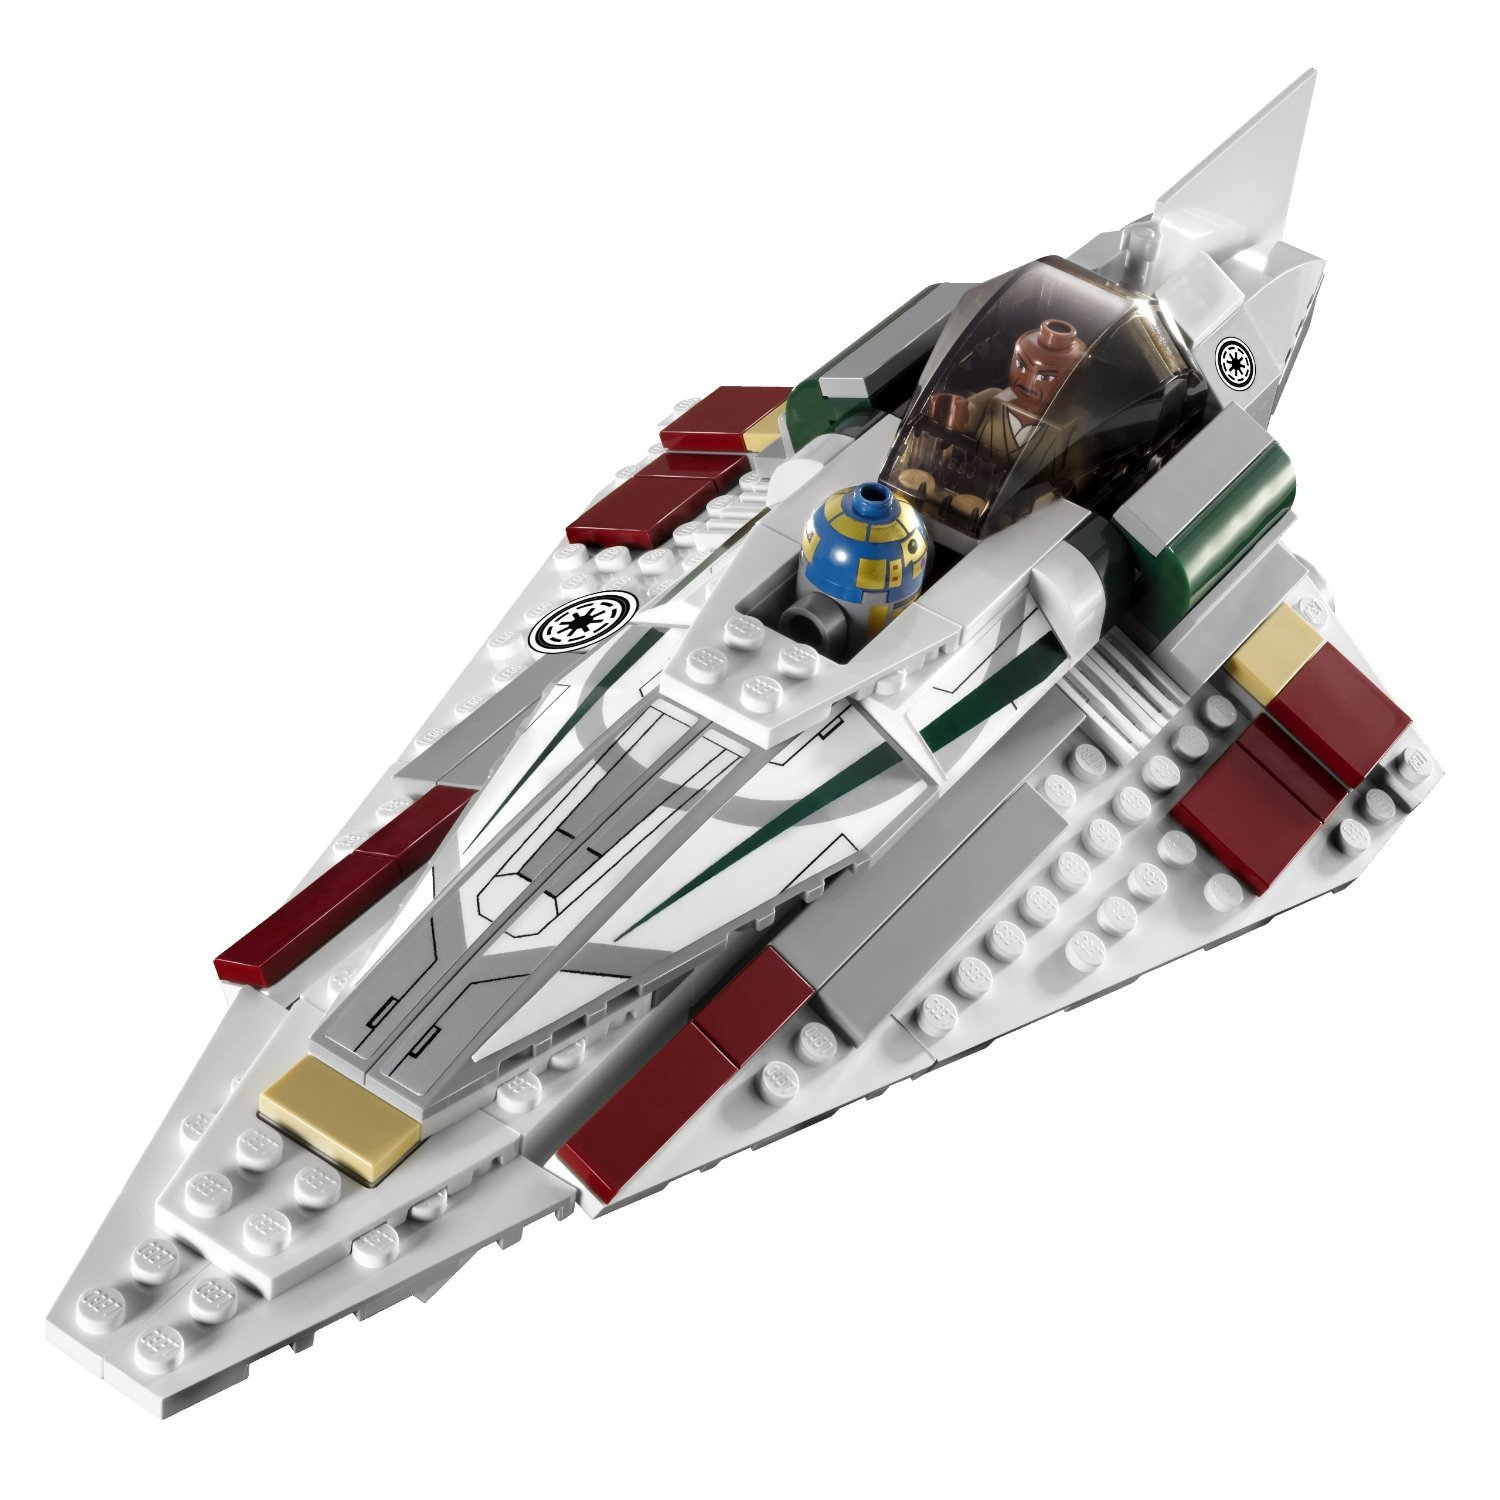 LEGO Star Wars 7868 - Mace Windursquo;s Jedi Starfightertrade; (ref. 4588499)